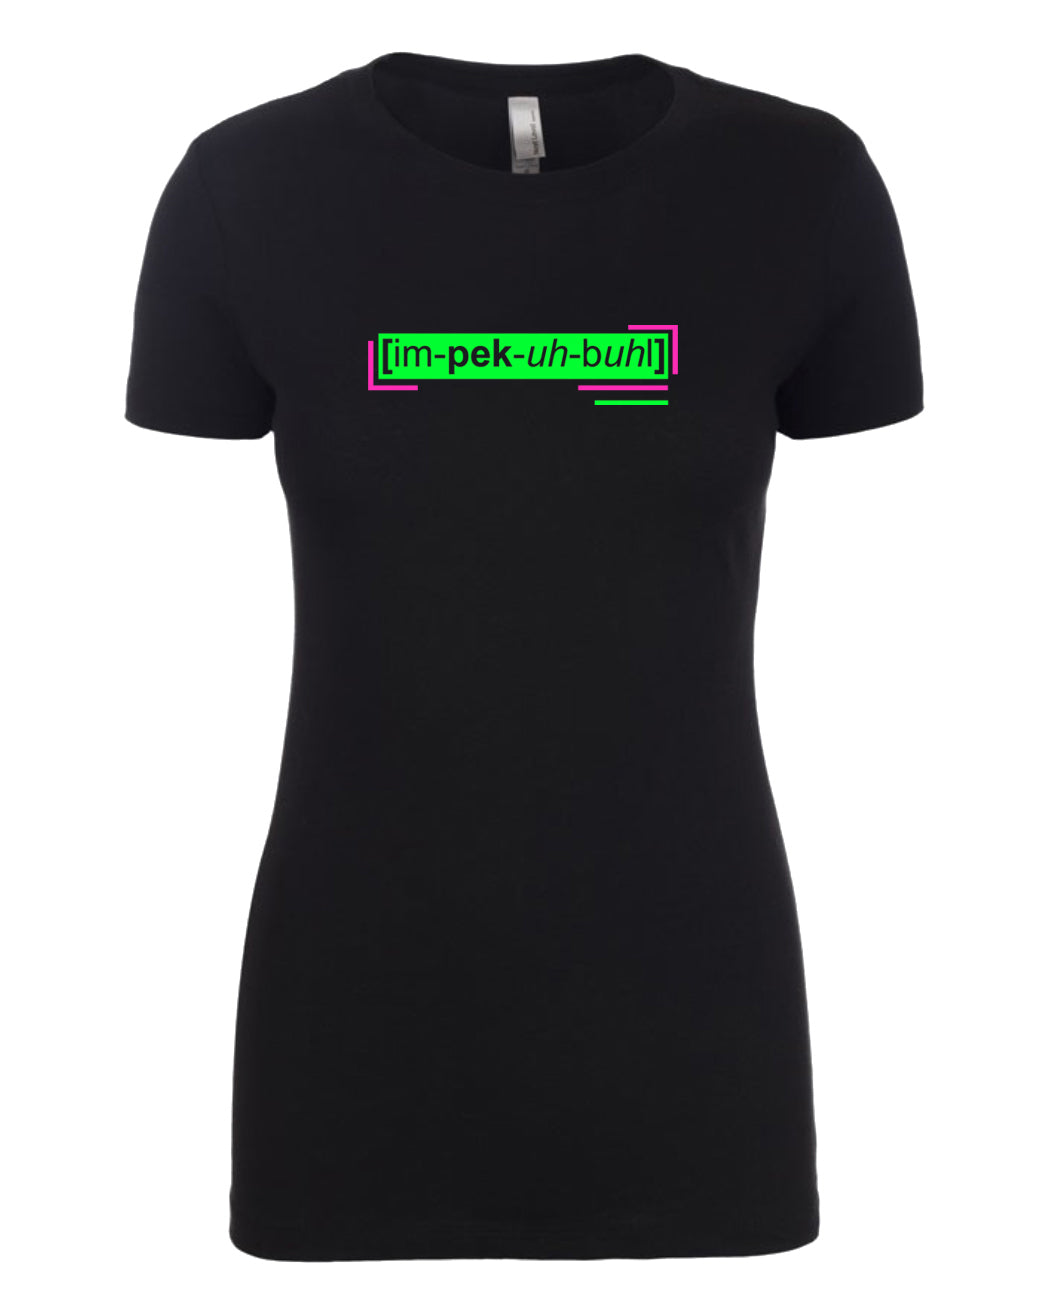 florescent green impeccable neon streetwear t shirt for women